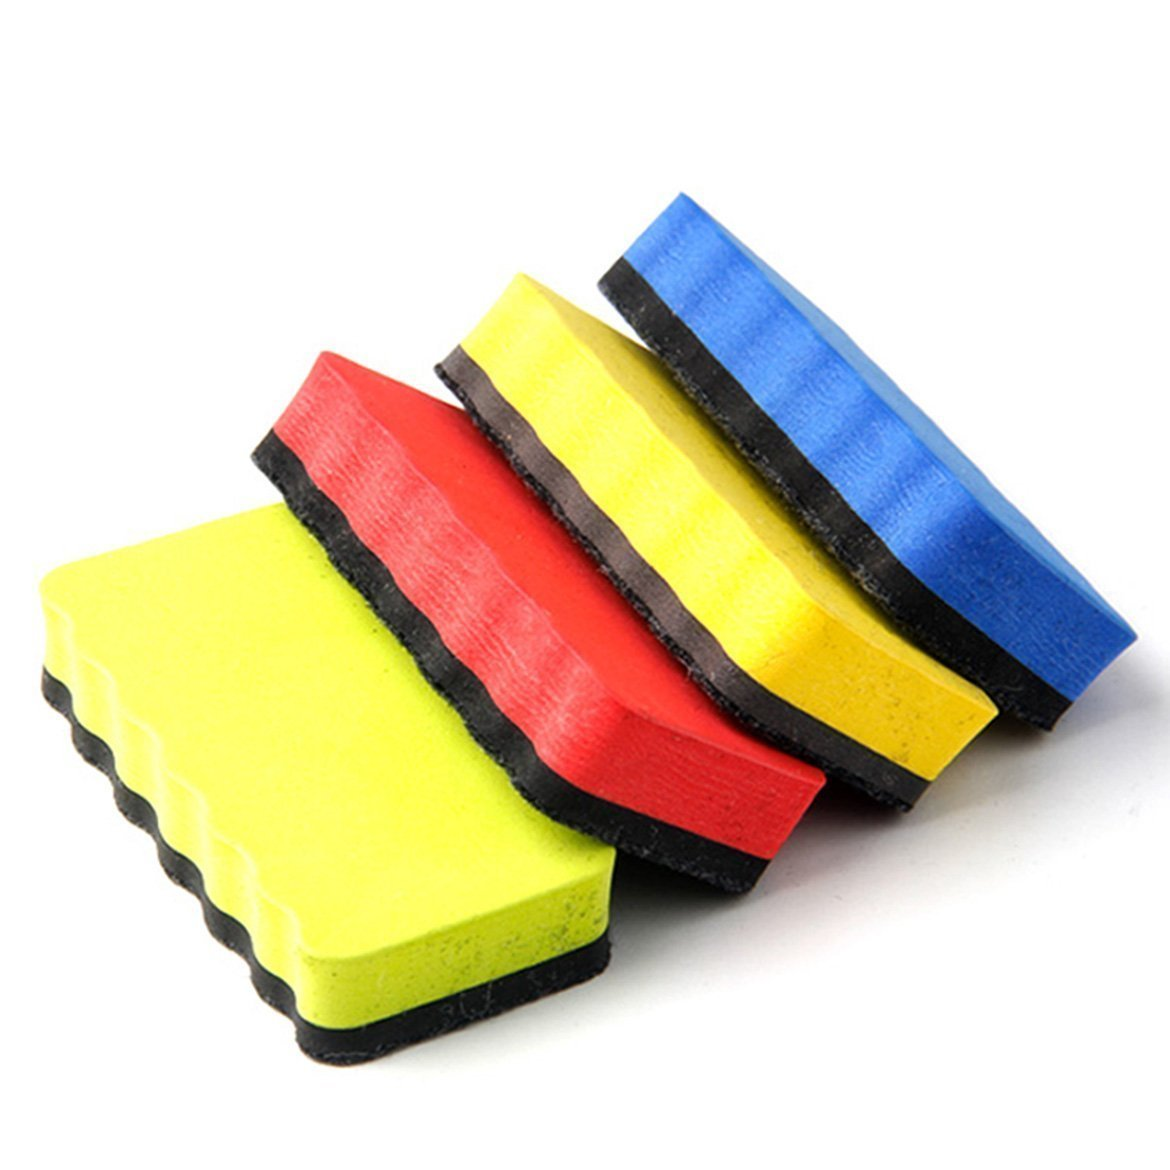 4pcs Magnete Witheboard Eraser Magnetic Plate Rub Foam Board Cleaner For Dry-wipe Whiteboard Random Color